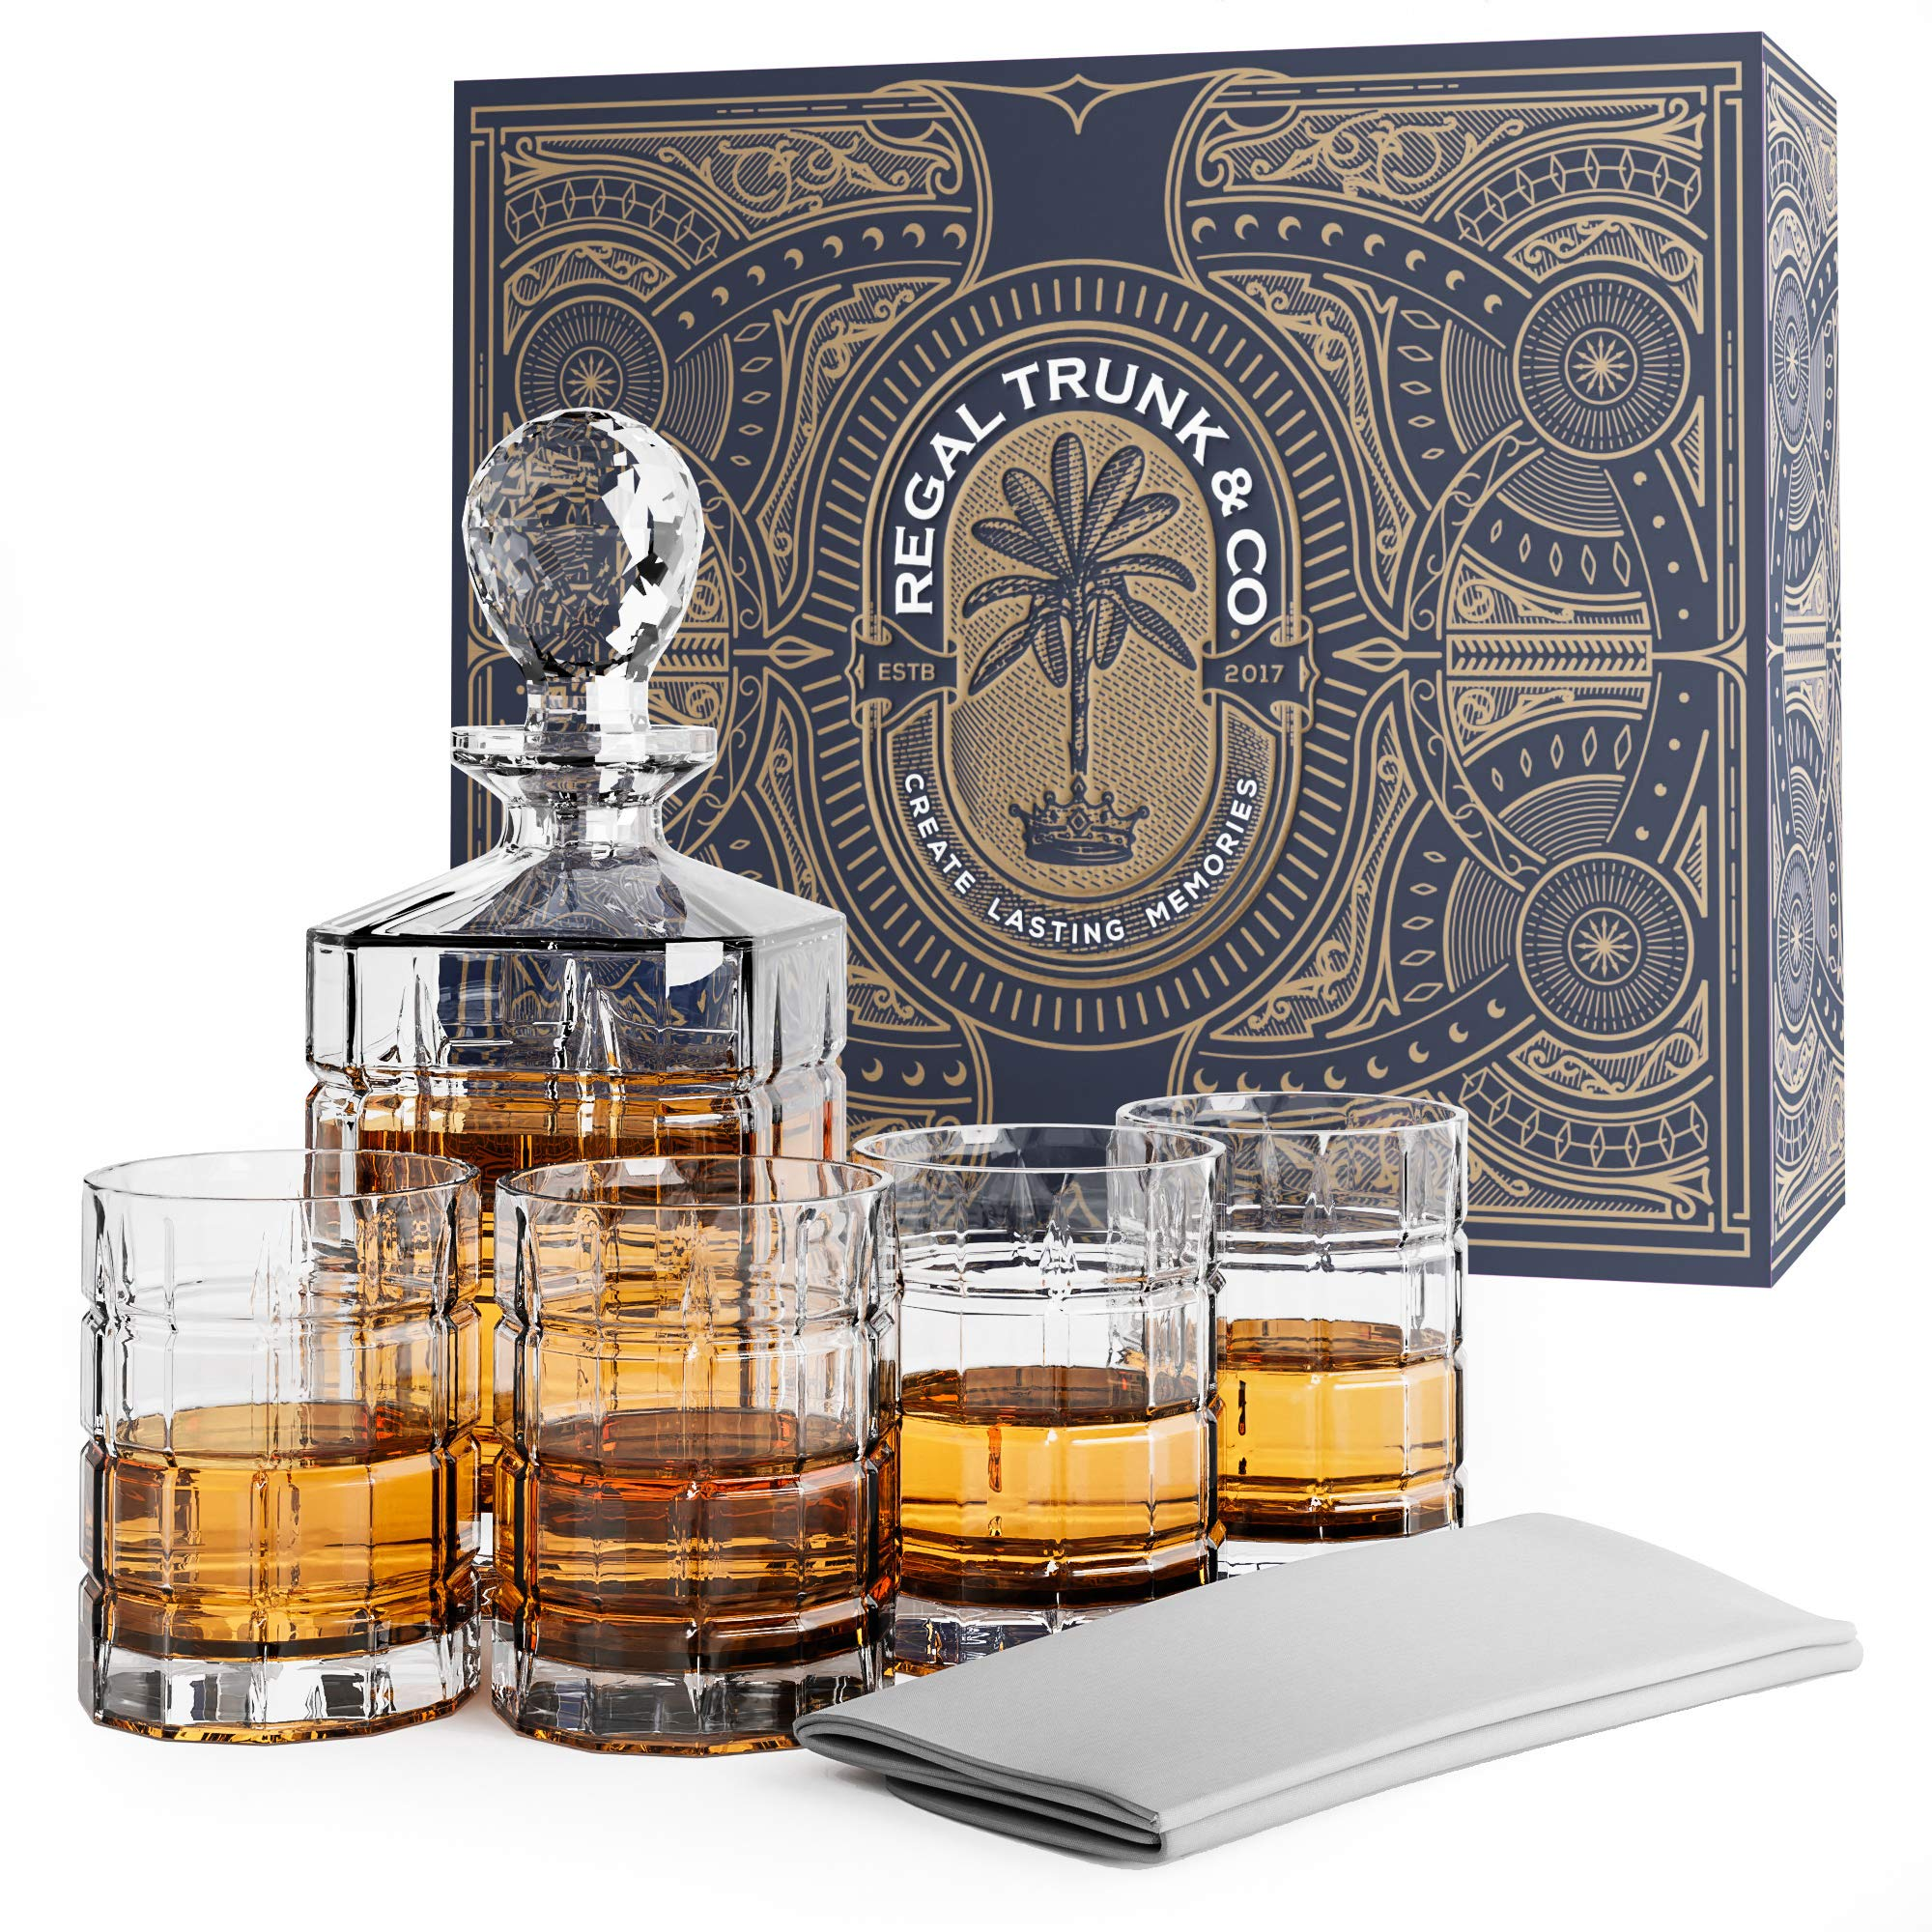 Elegant 5 Piece Whiskey Decanter and Glass Set in a Spectacular Gift Box - Lead Free Crystal Glass Decanter with 4 Whiskey Glasses | Bourbon Scotch Liquor Dispenser - Bonus Glass Polishing Cloth by Regal Trunk & Co.